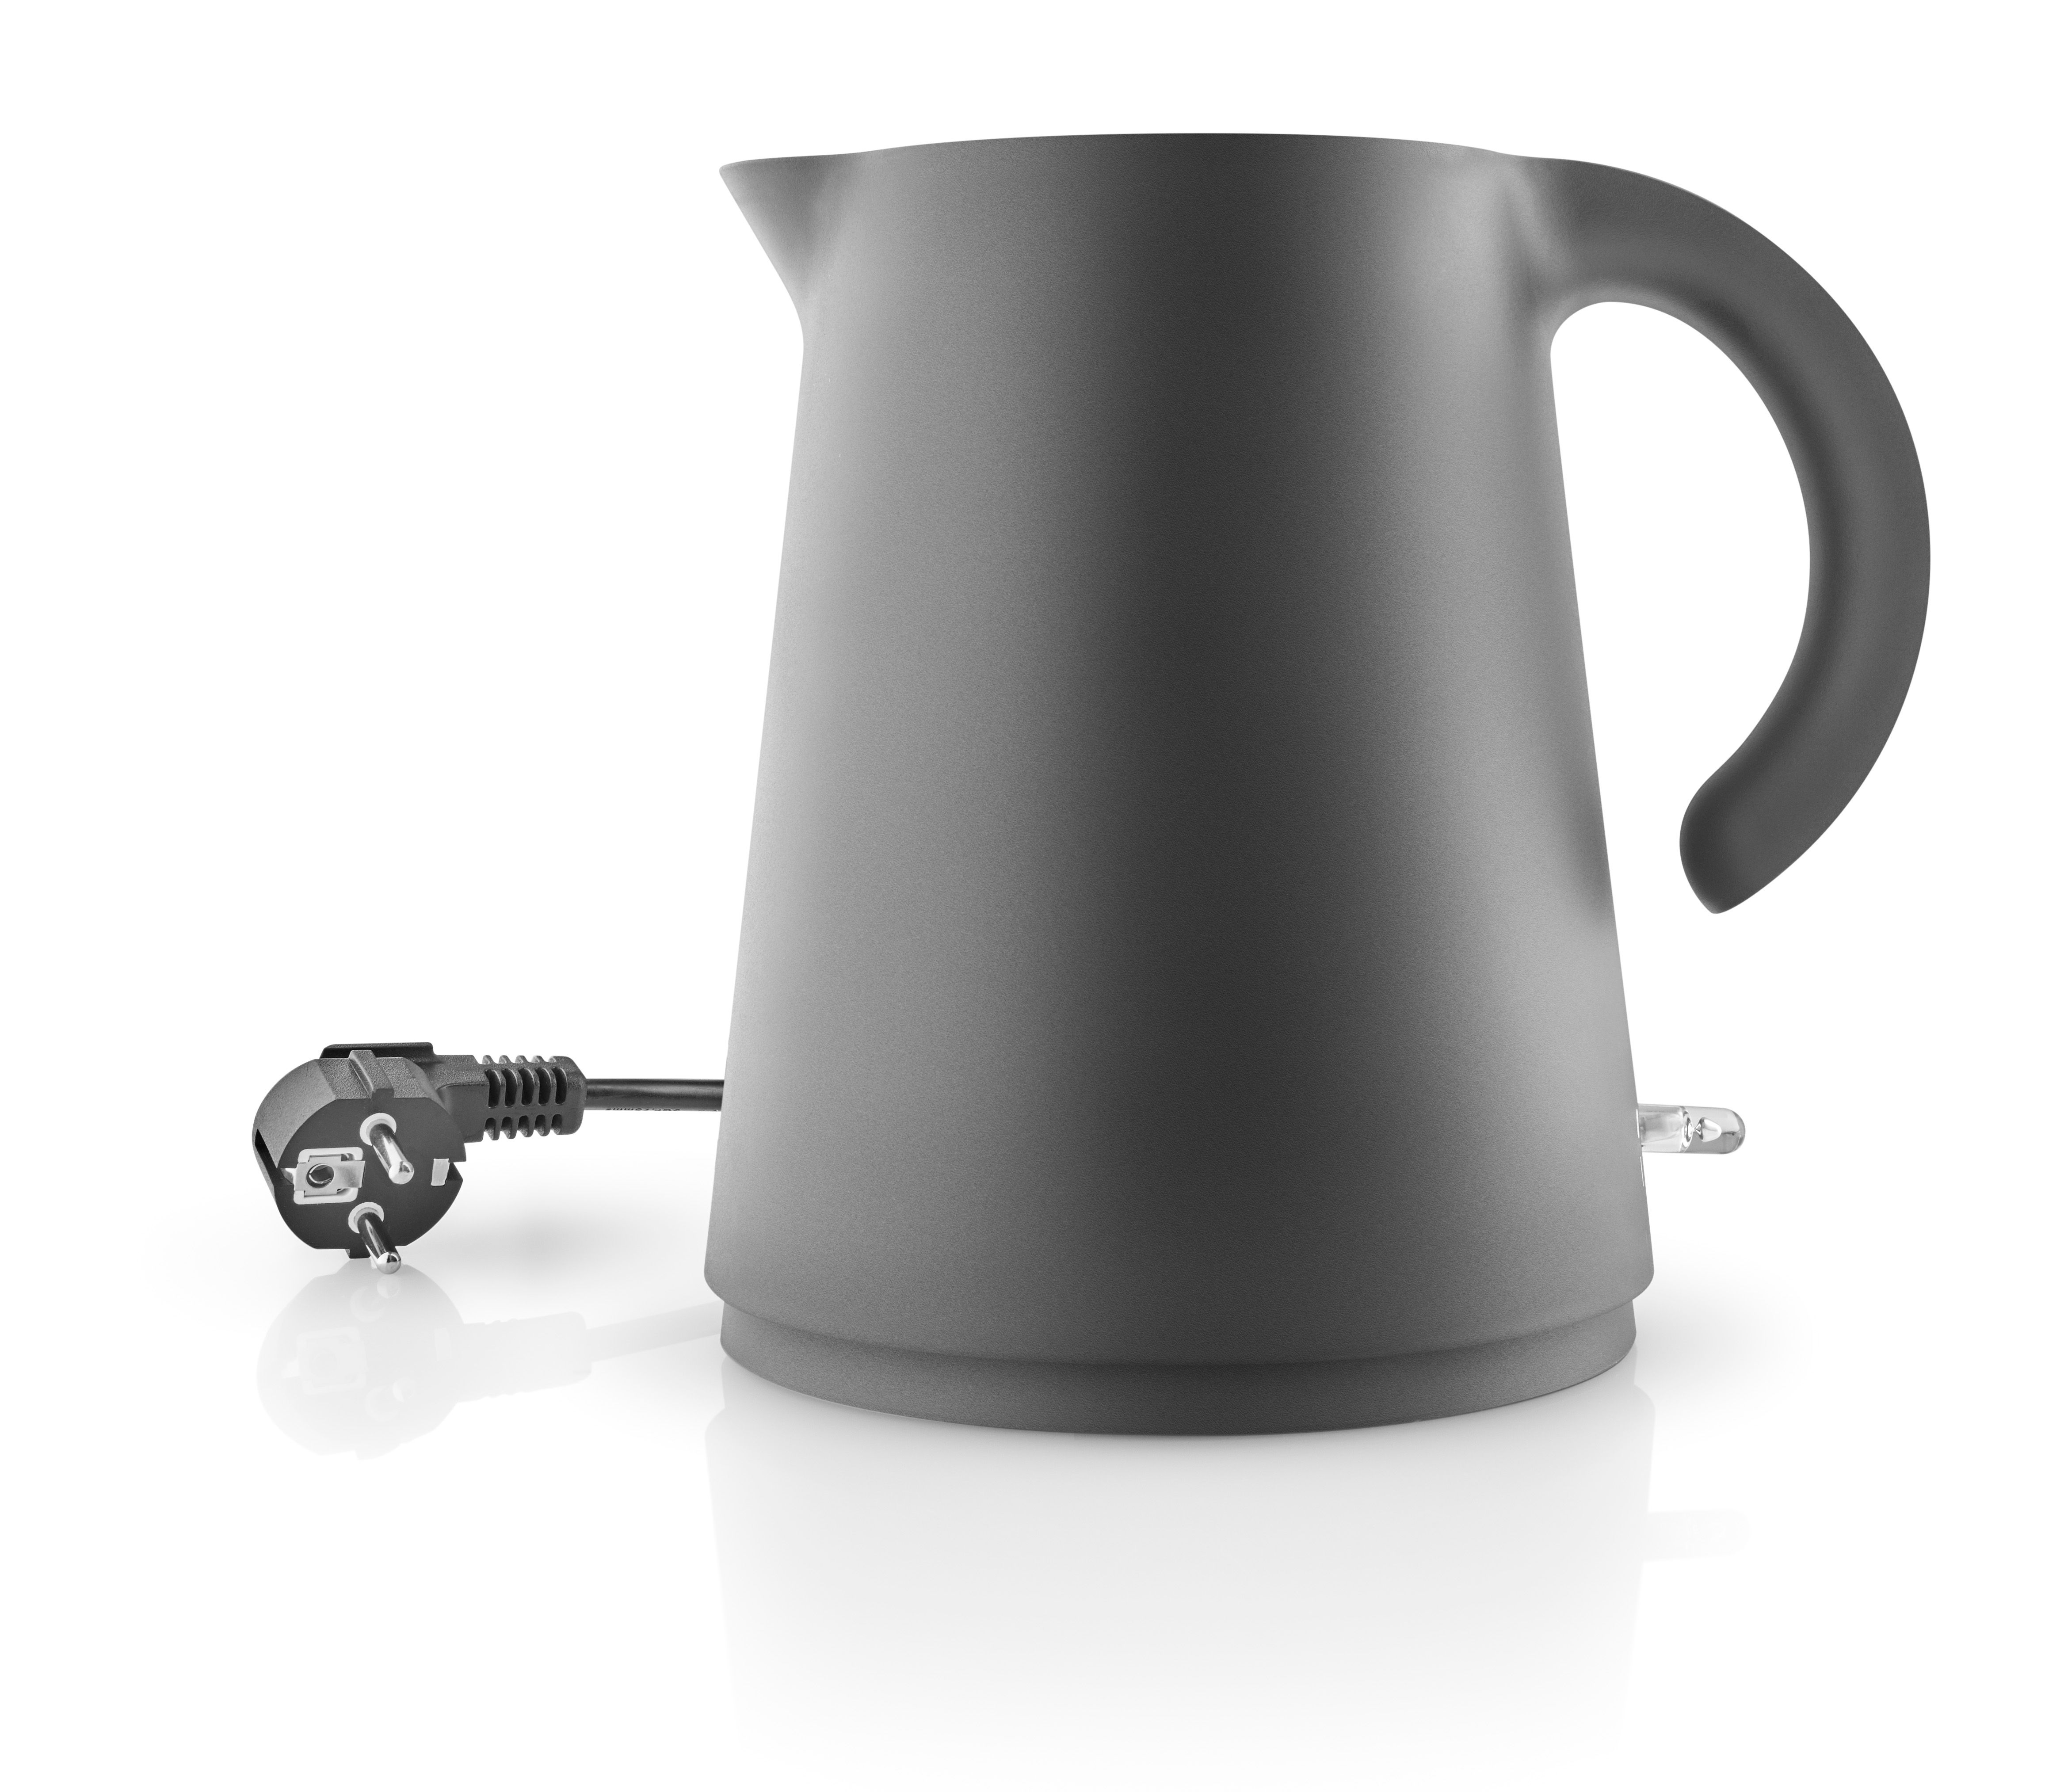 Eva Solo - Rise Electric Kettle 1,2 L - Black (502730)